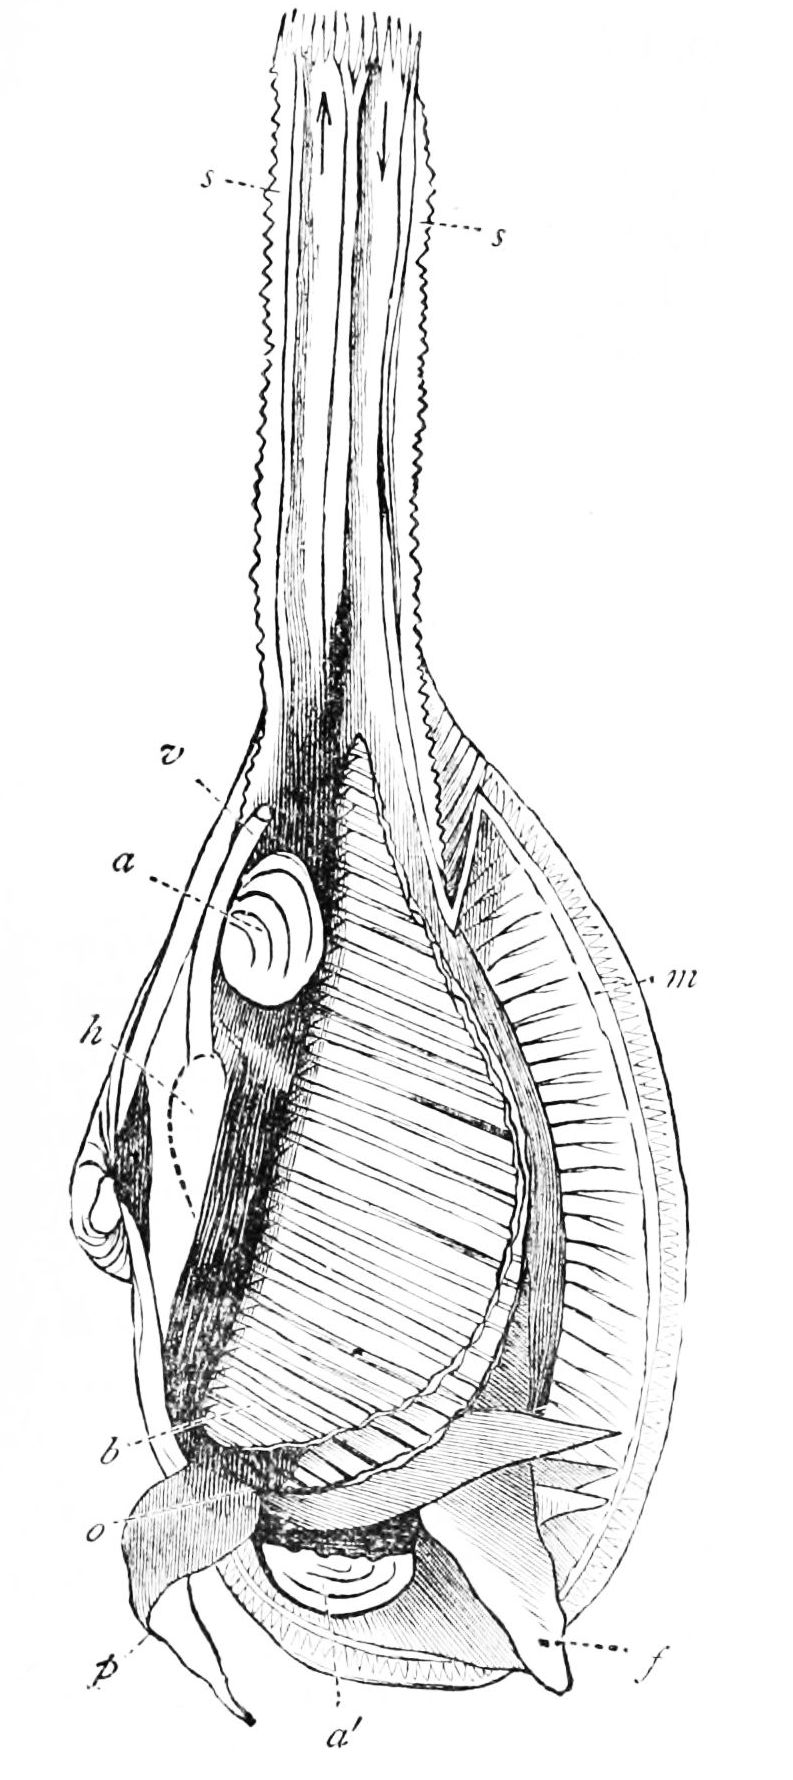 File:PSM V20 D470 Anatomy of a bivalve mollusk.jpg - Wikimedia Commons